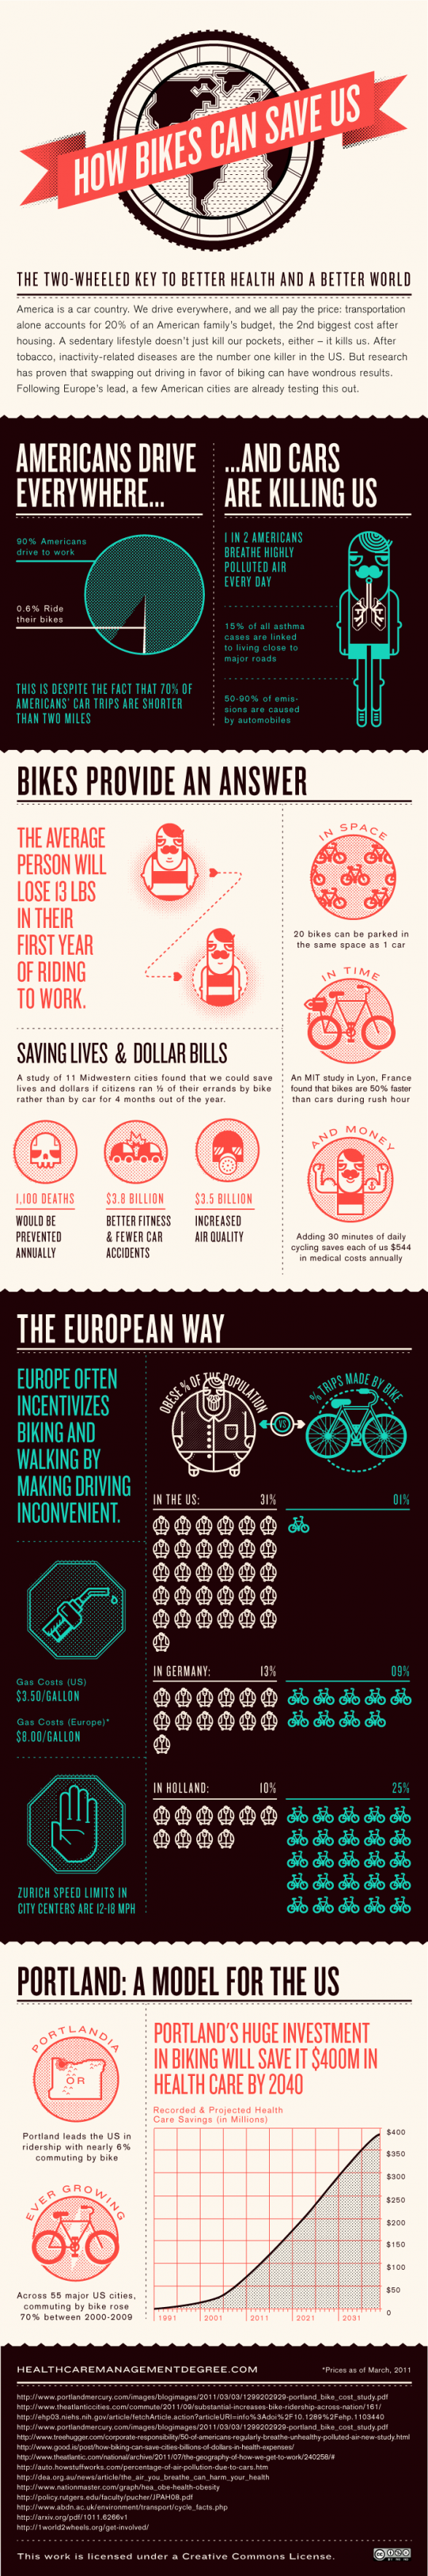 how-bikes-can-save-us_infographic